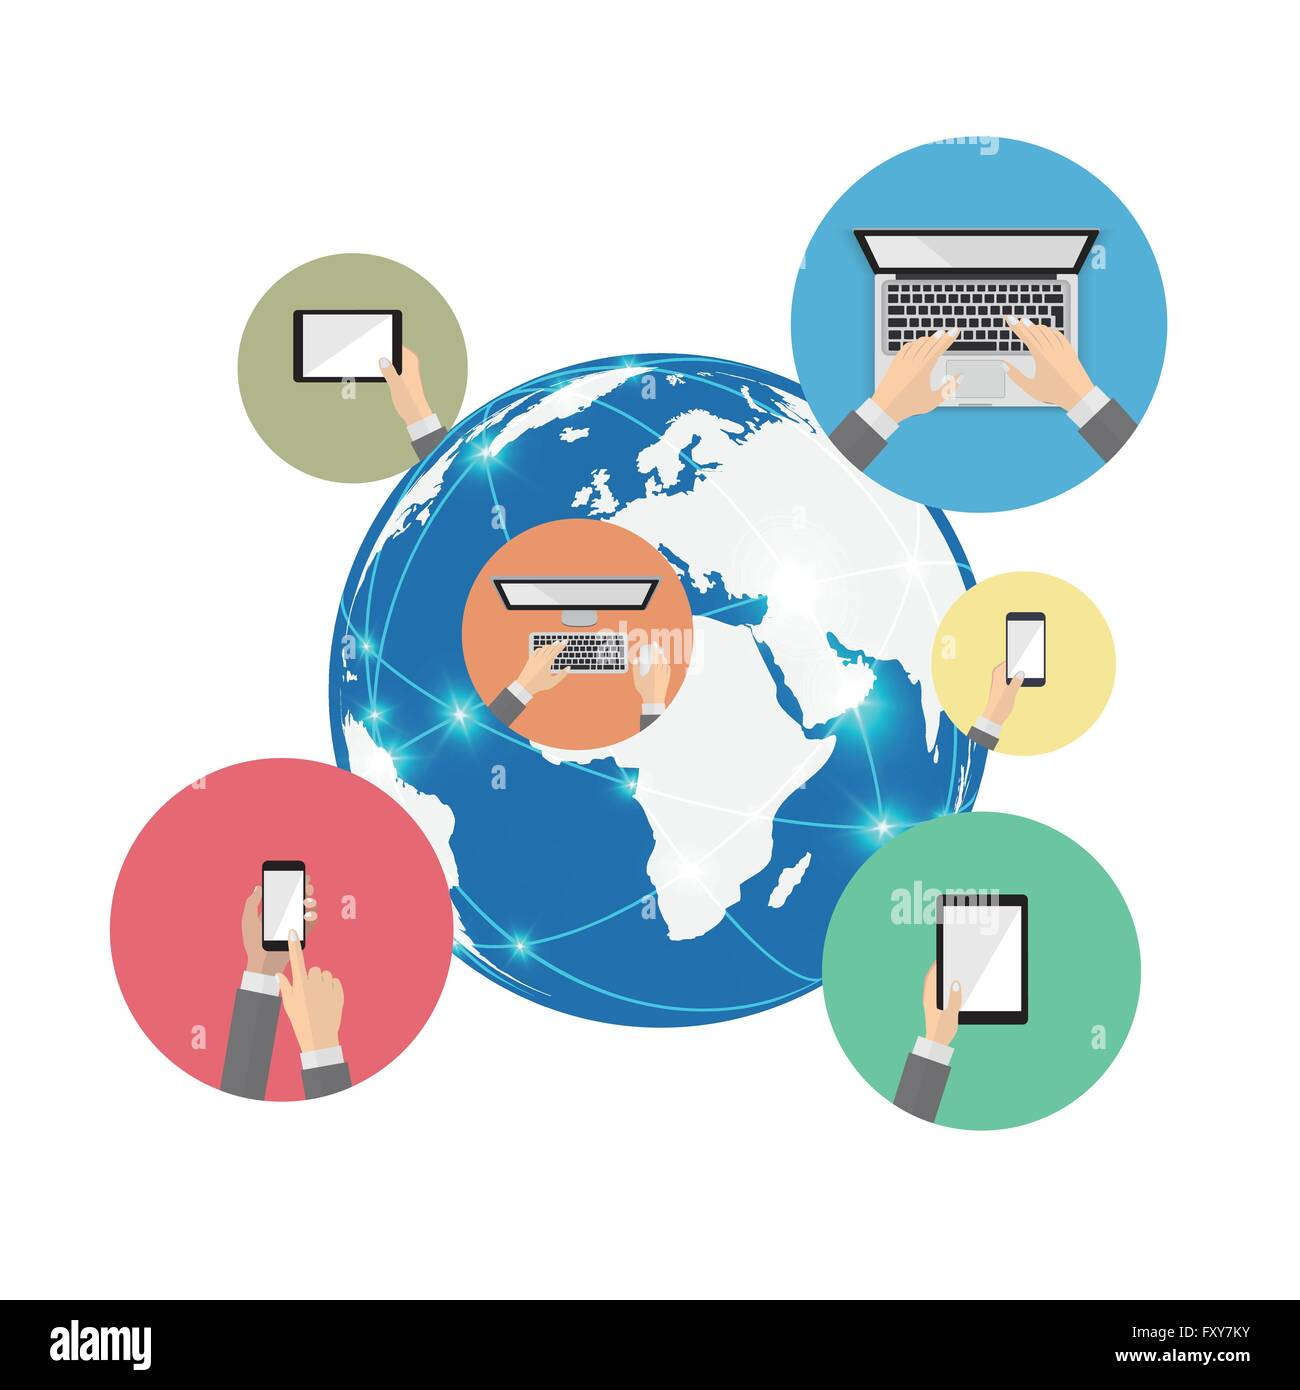 Global communication and digital device information - Stock Image